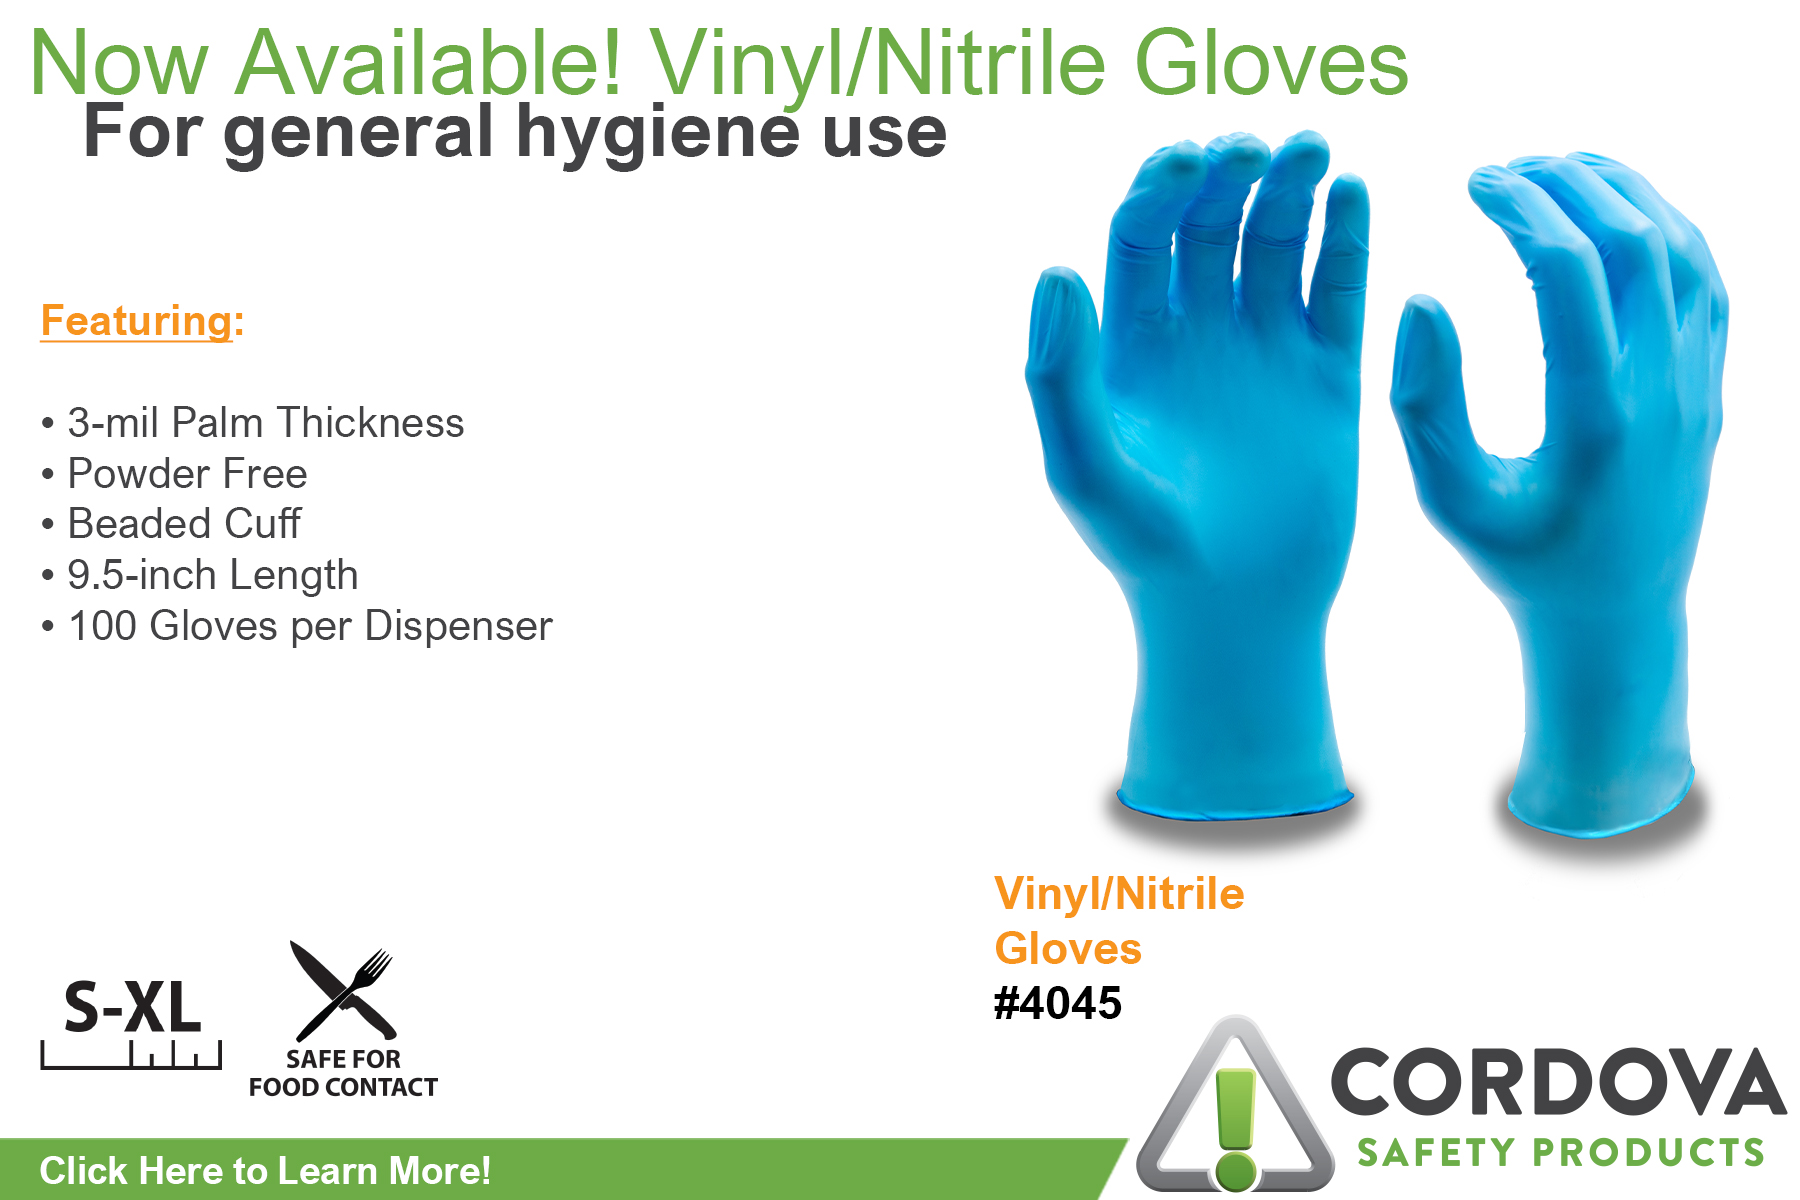 Vinyl/Nitrile Gloves 4045